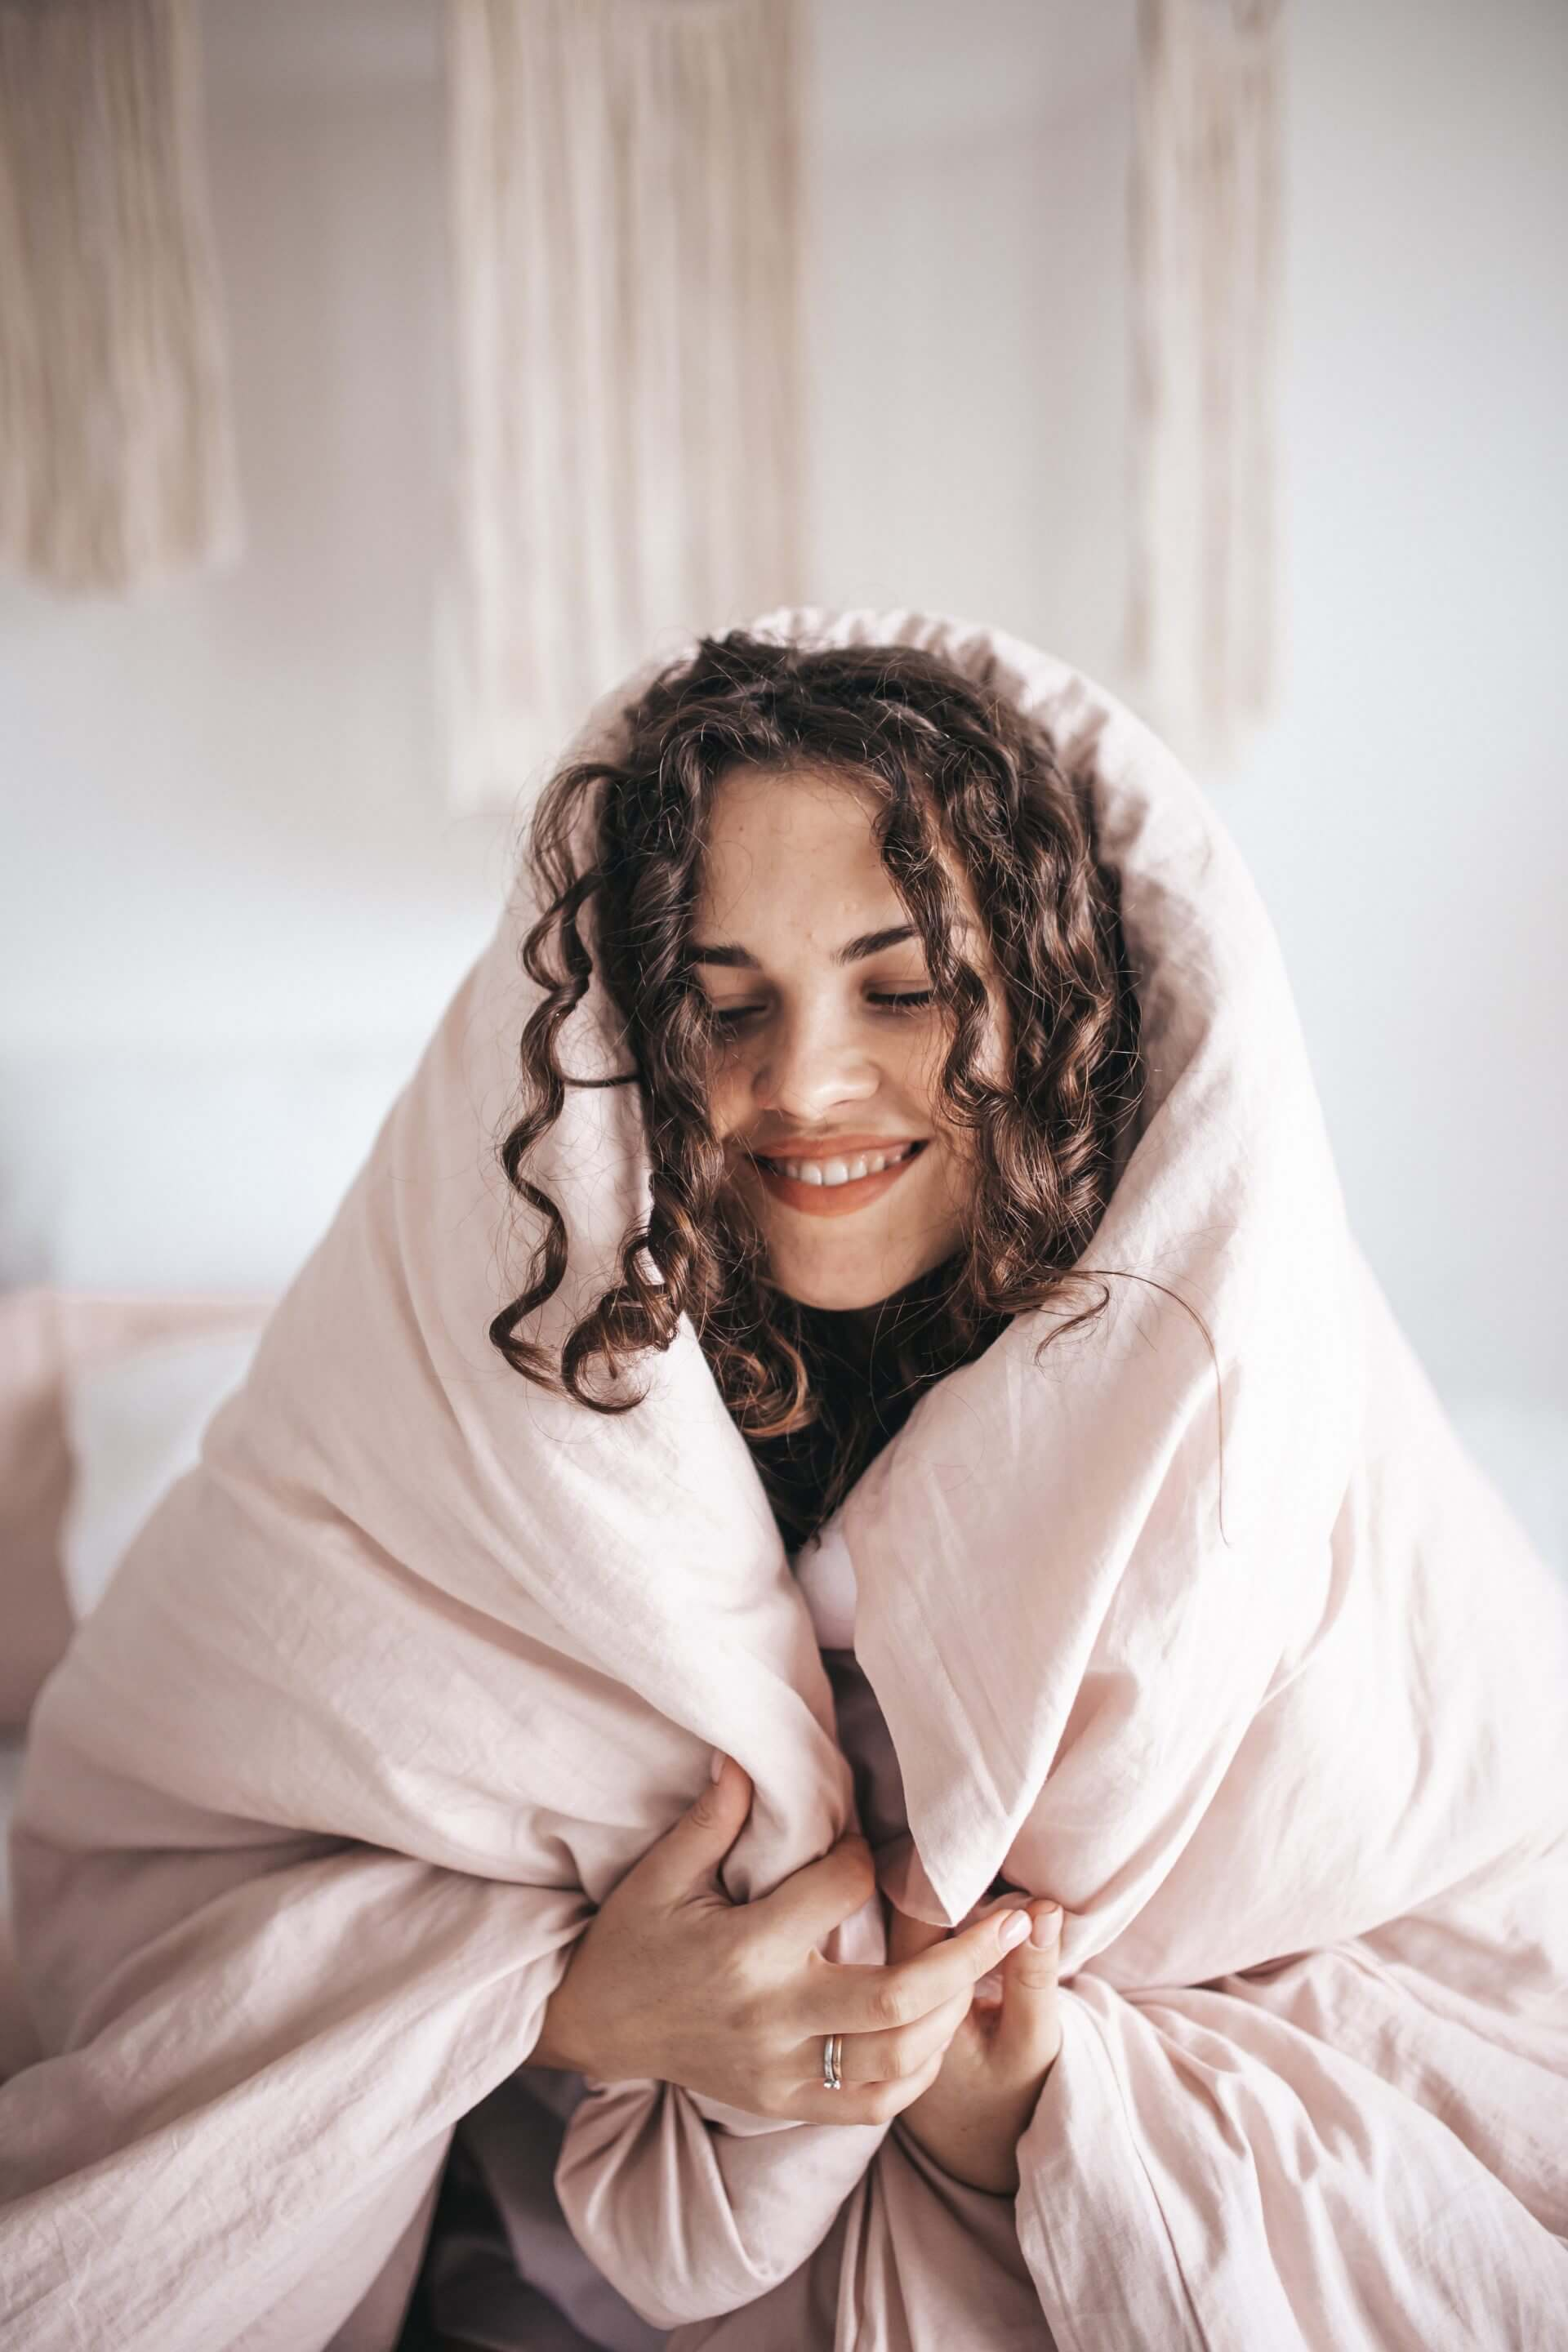 A smiling woman with a blanker wrapped around her practicing self-care.